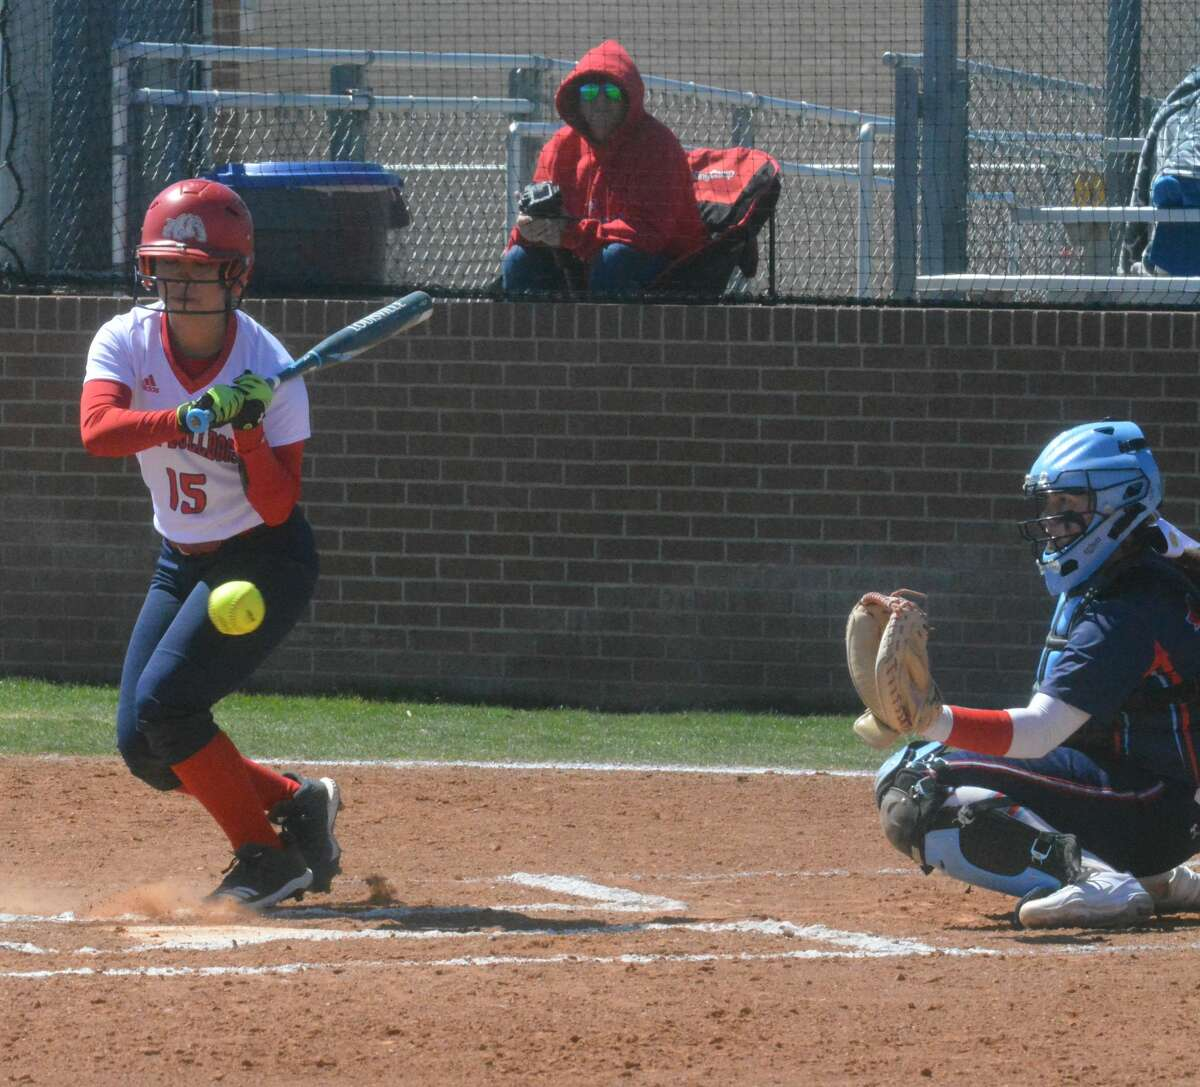 The Monterey Lady Plainsmen shut out the Plainview Lady Bulldogs, 5-0, during District 3-5A softball action on Friday in Plainview.